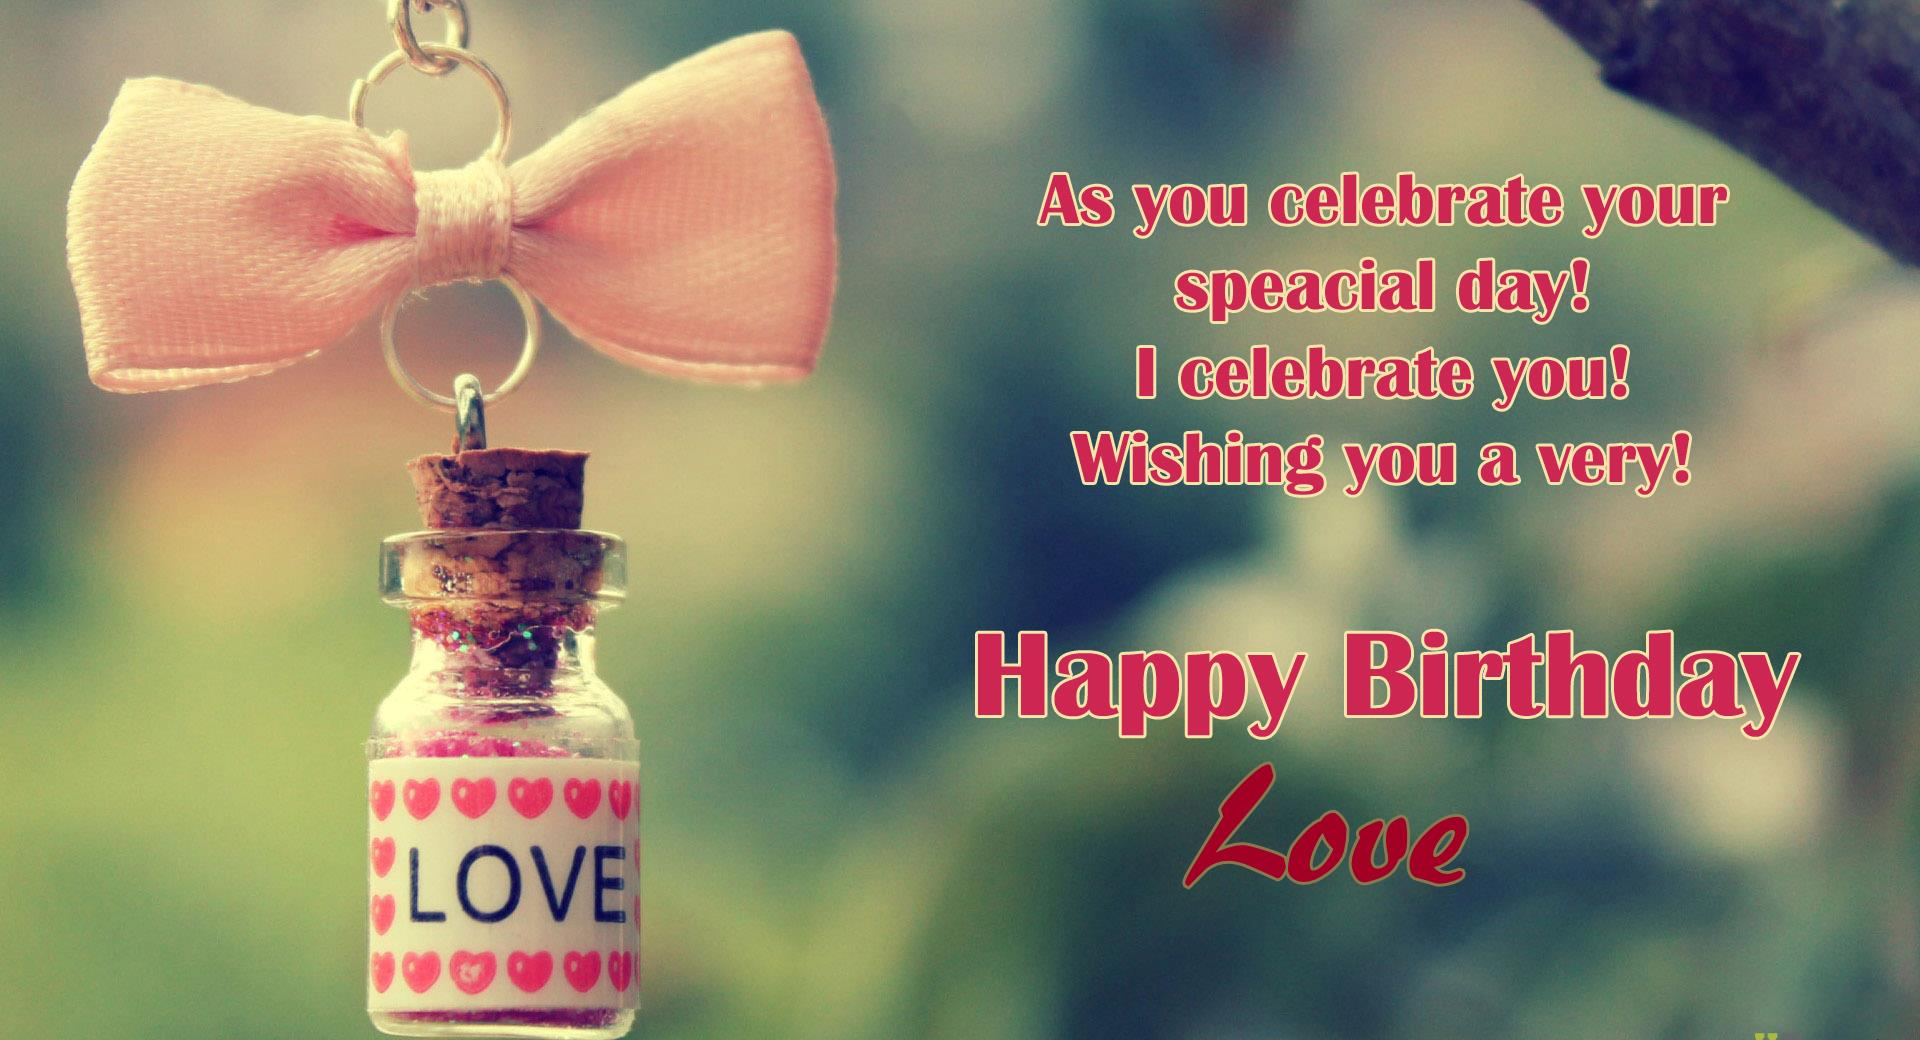 Love Quotes Wallpaper For Husband : Happy Birthday Love Quotes. QuotesGram